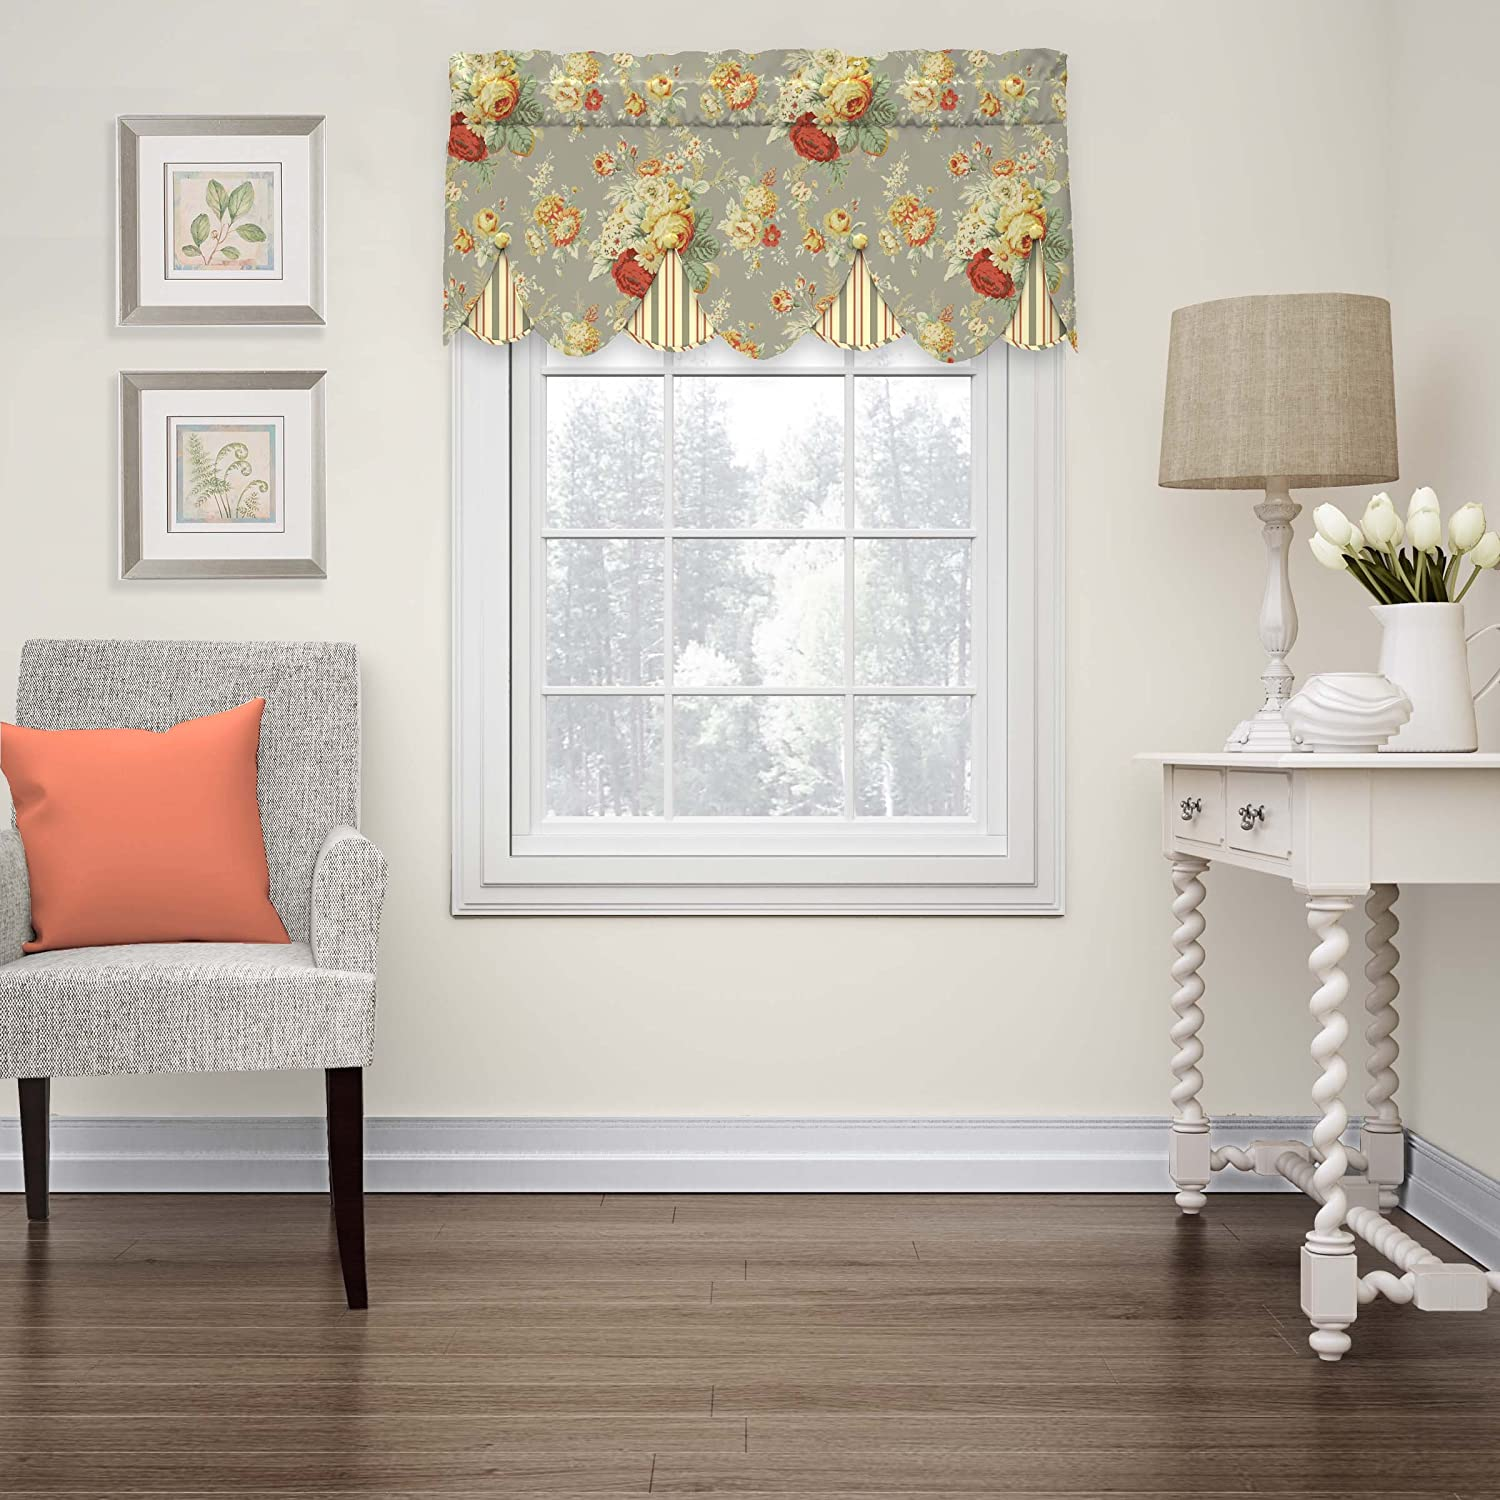 WAVERLY Translated Sanctuary Rose Short Valance Window Curtains Small Discount mail order Bathr